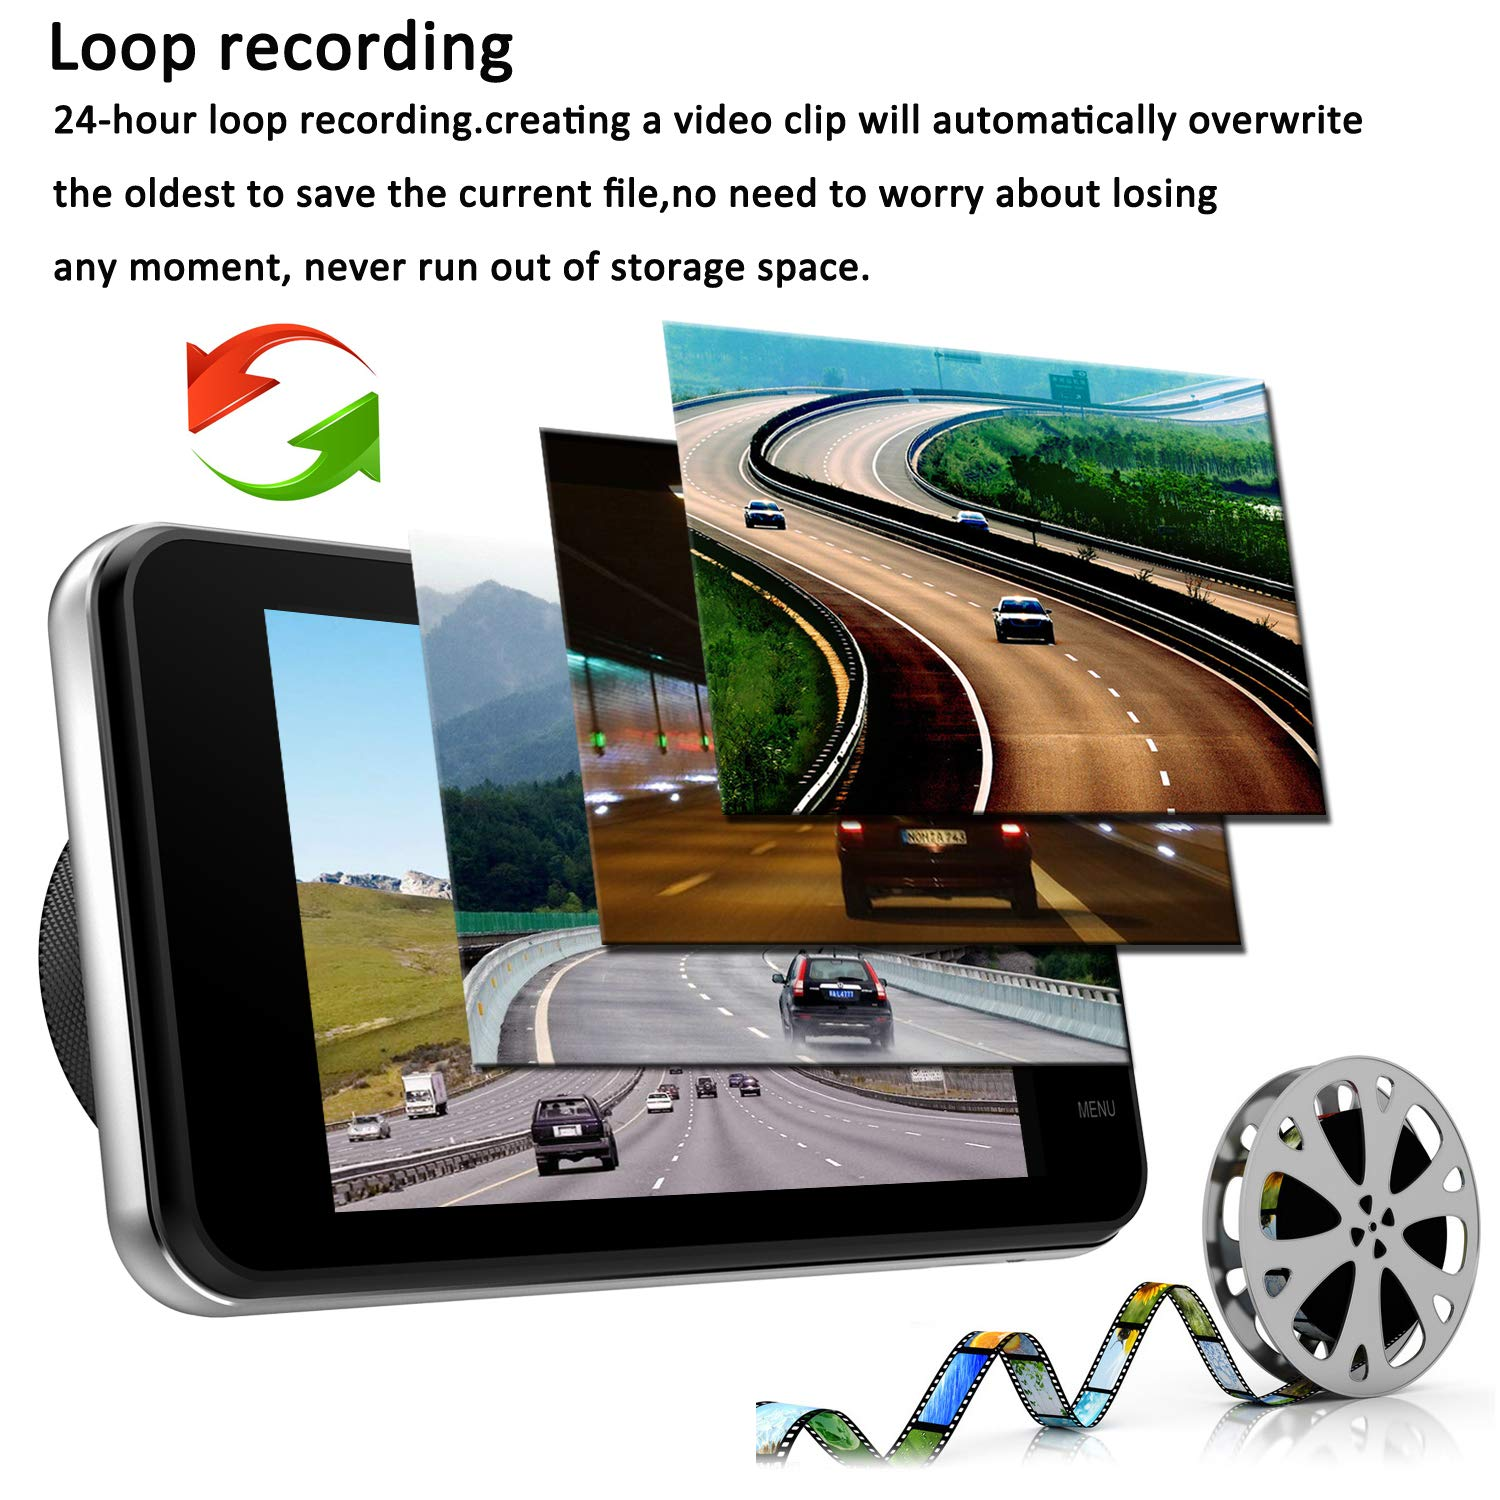 Dual Dash Cam Front and Rear, NINE CUBE 1080p HD Driving Recorder,Car DVR Dashboard Camera, 4'' IPS Screen, 170° Super Wide Angle, G Sensor, Loop Recording, Parking Monitor, Motion Detection by NINE CUBE (Image #5)